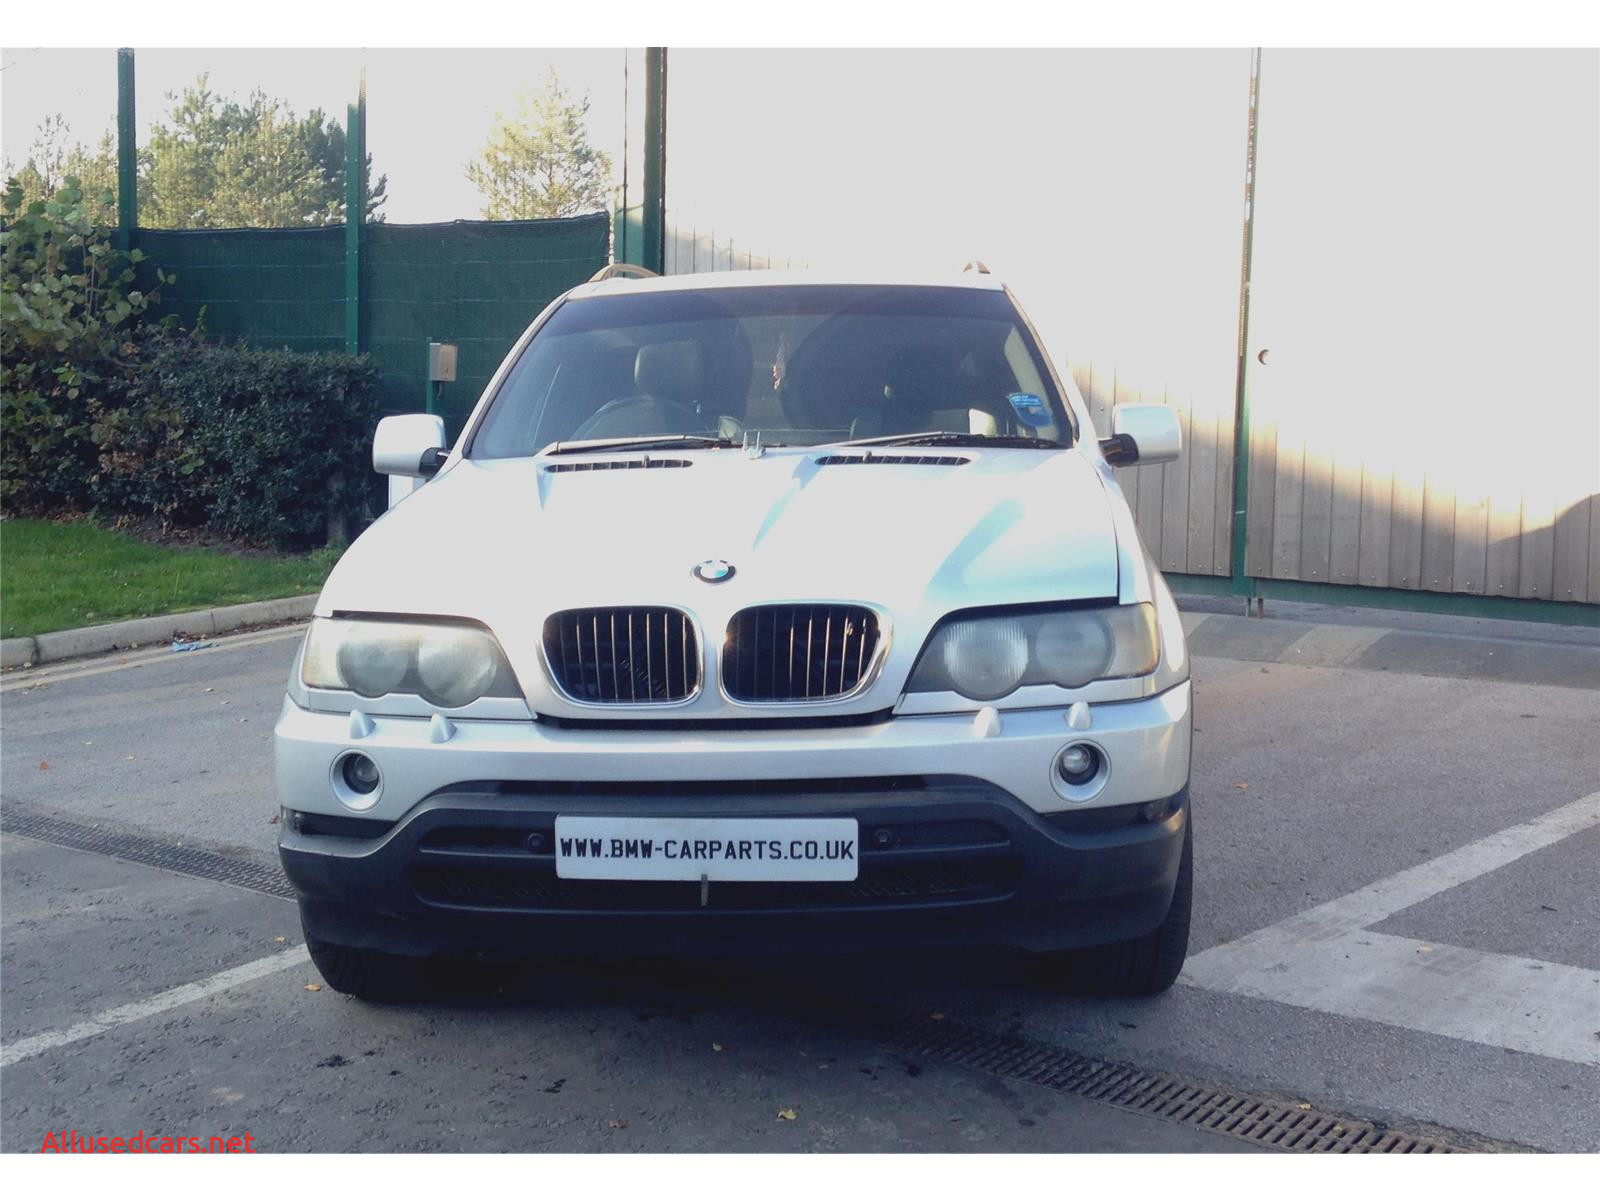 Bmw X5 2002 Sports Elegant 2002 Bmw X5 D Sport Estate Diesel Automatic Breaking for